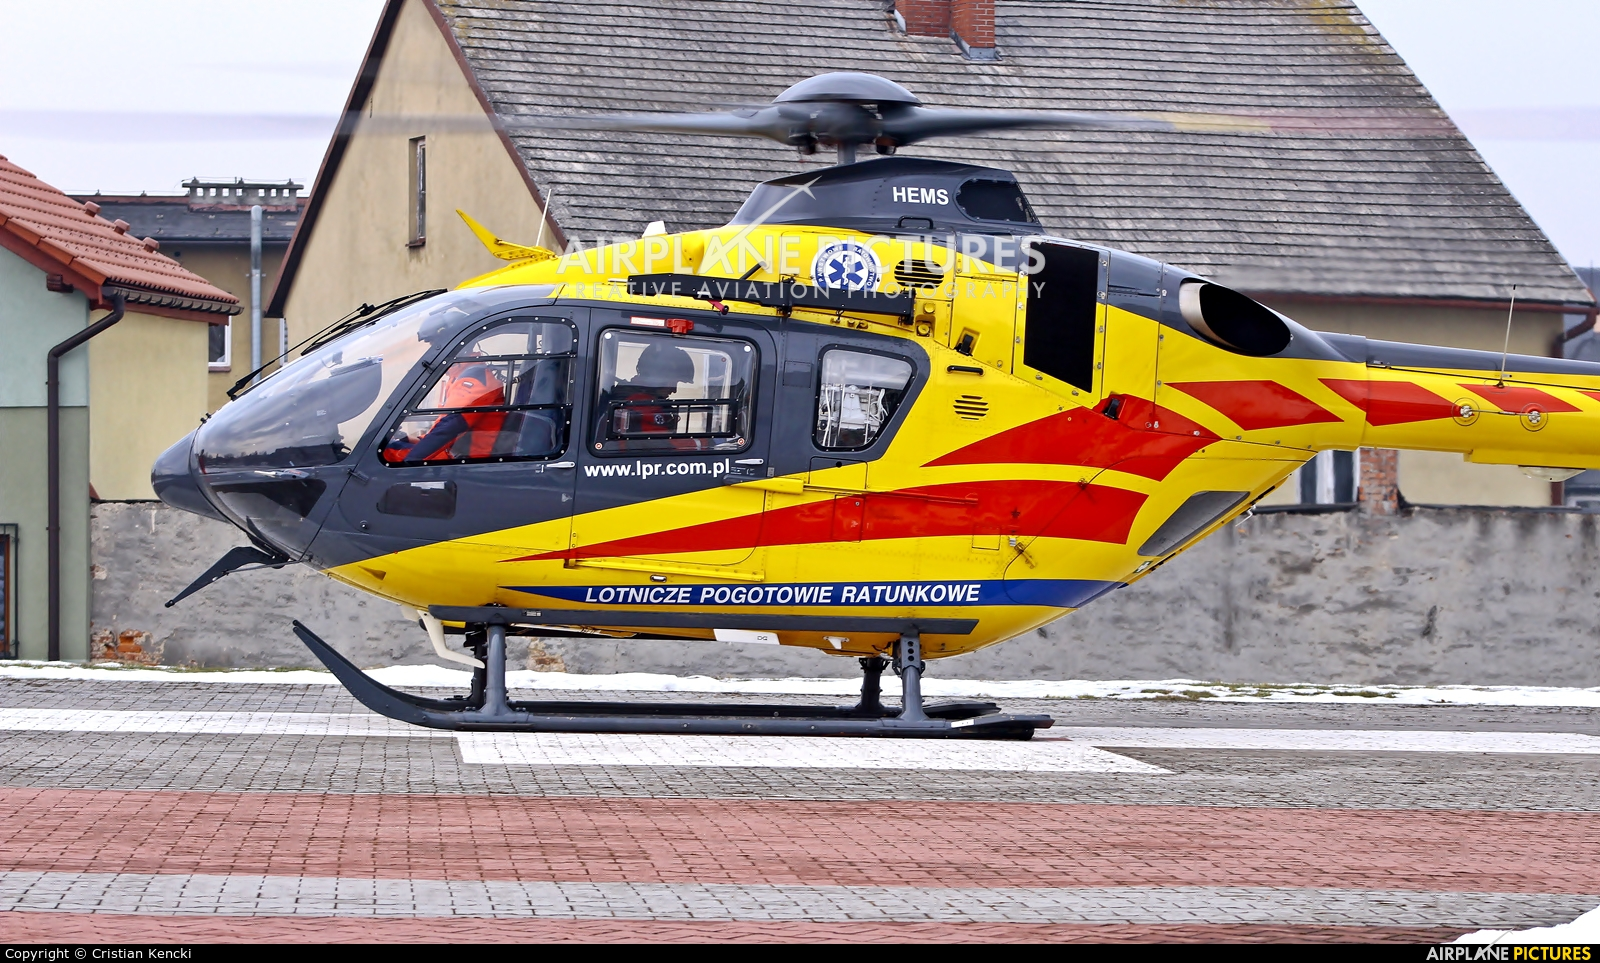 Polish Medical Air Rescue - Lotnicze Pogotowie Ratunkowe SP-HXC aircraft at